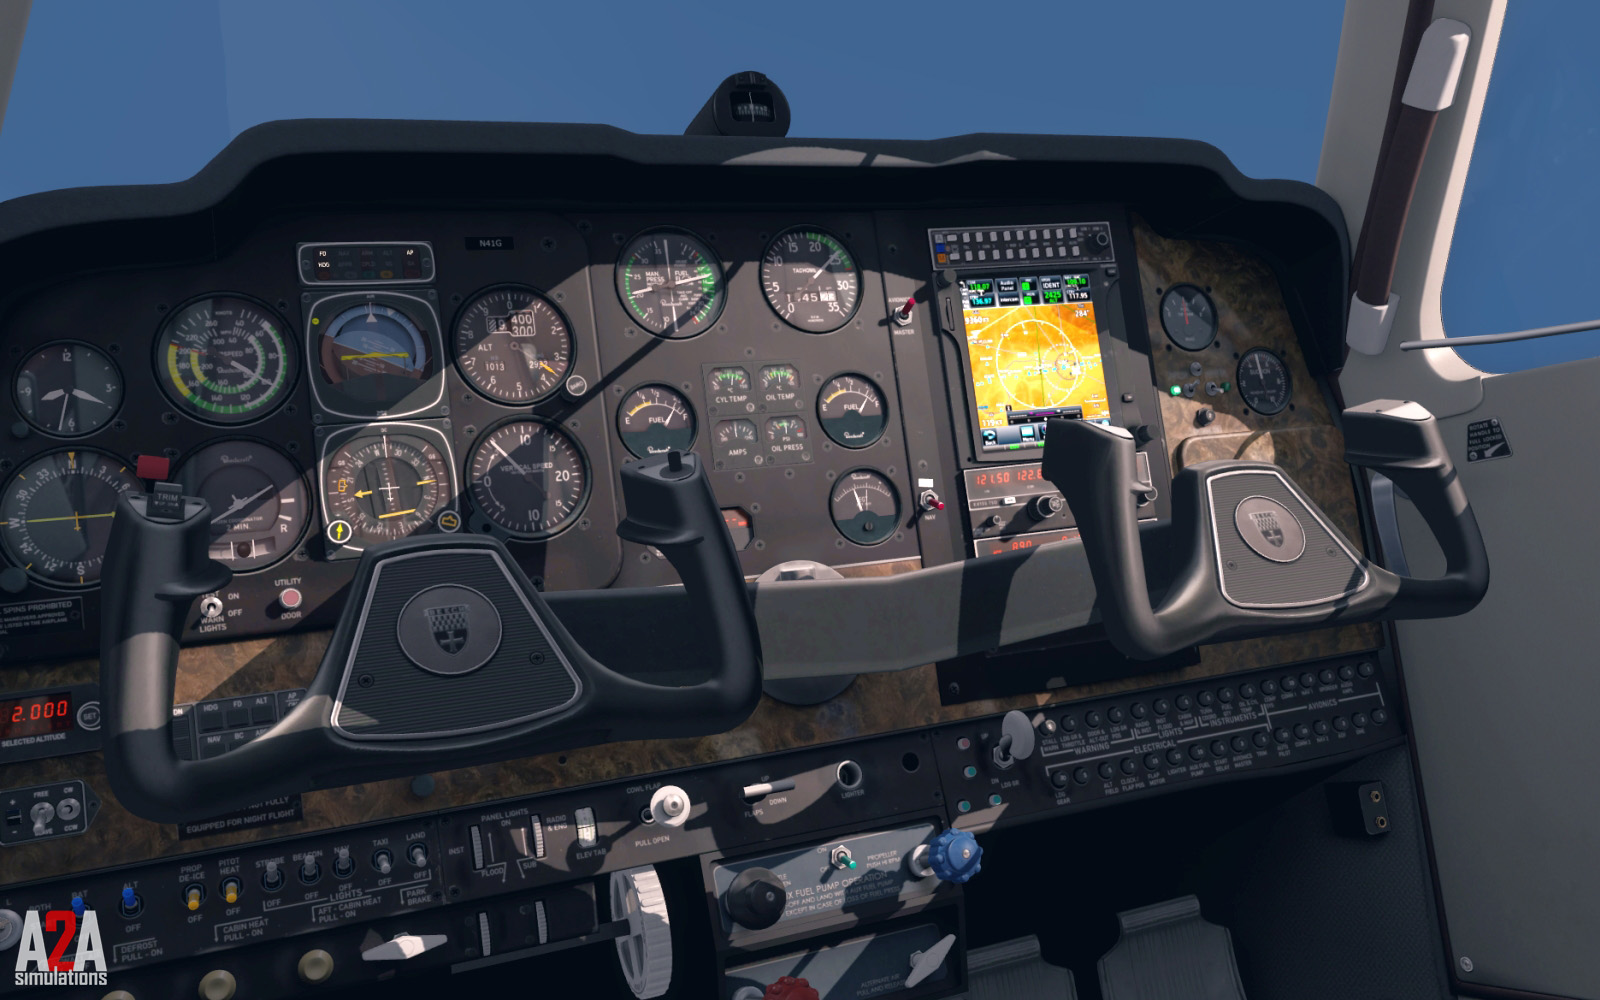 A2A Simulations - Accu-Sim Bonanza for FSX and P3D v4 Professional